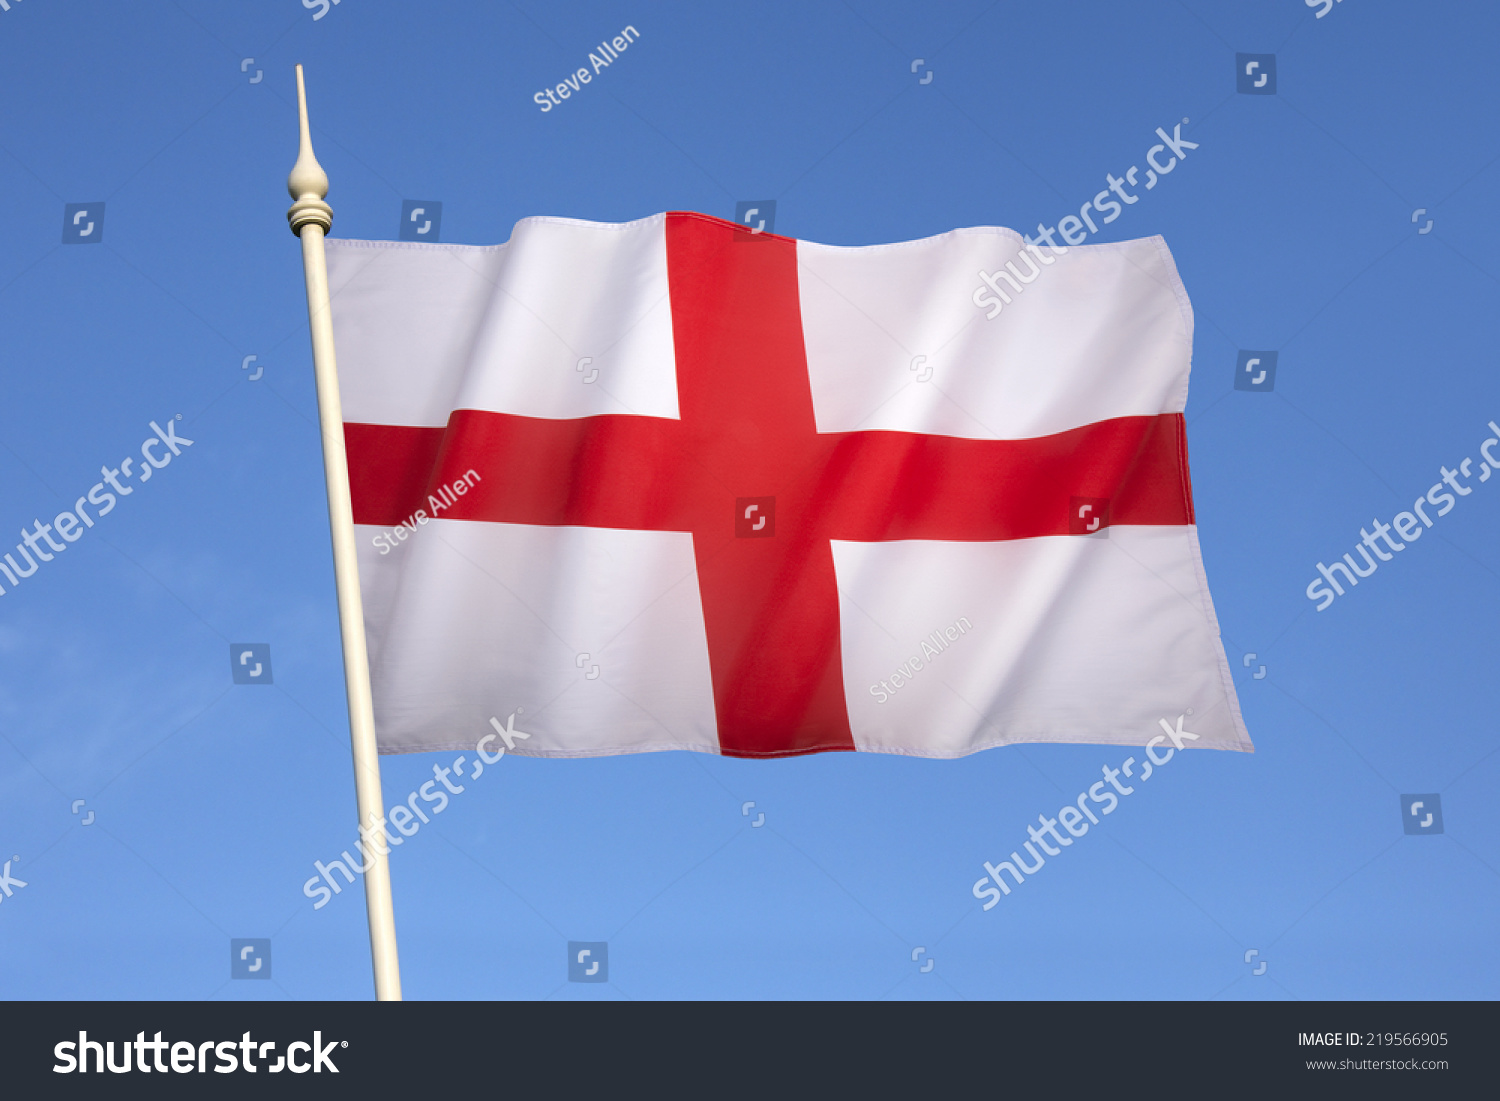 flag england st georges cross red stock photo 219566905 shutterstock